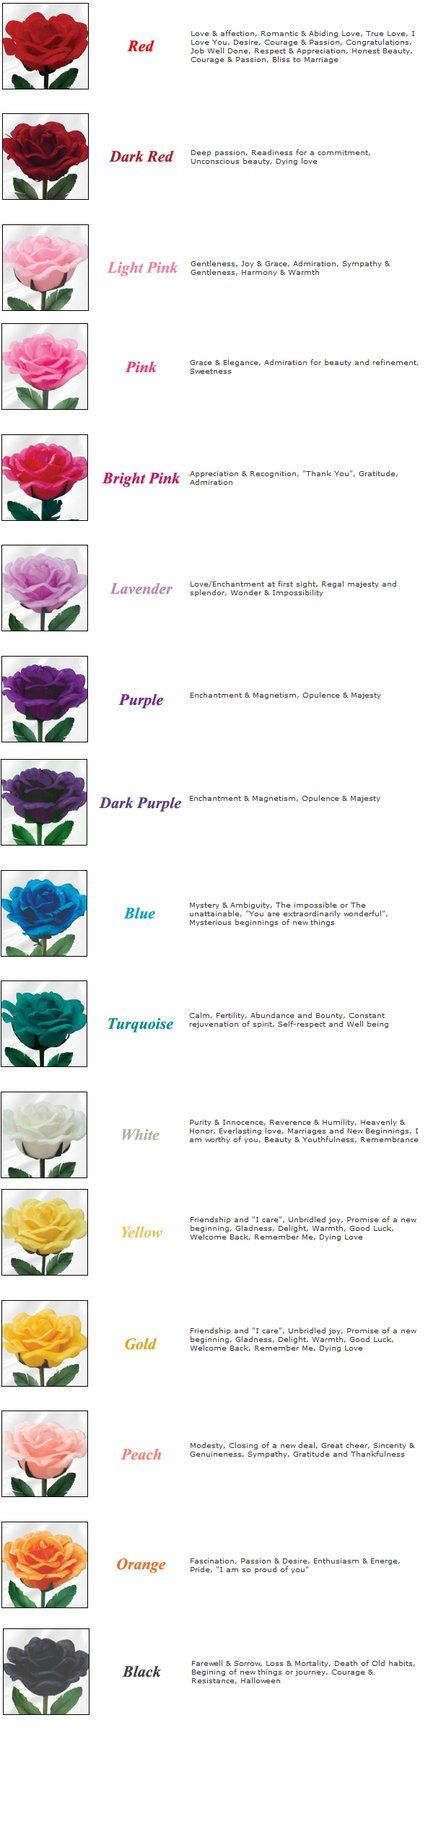 Rose Color Meanings by kawaii-panda-aru524 on deviantART